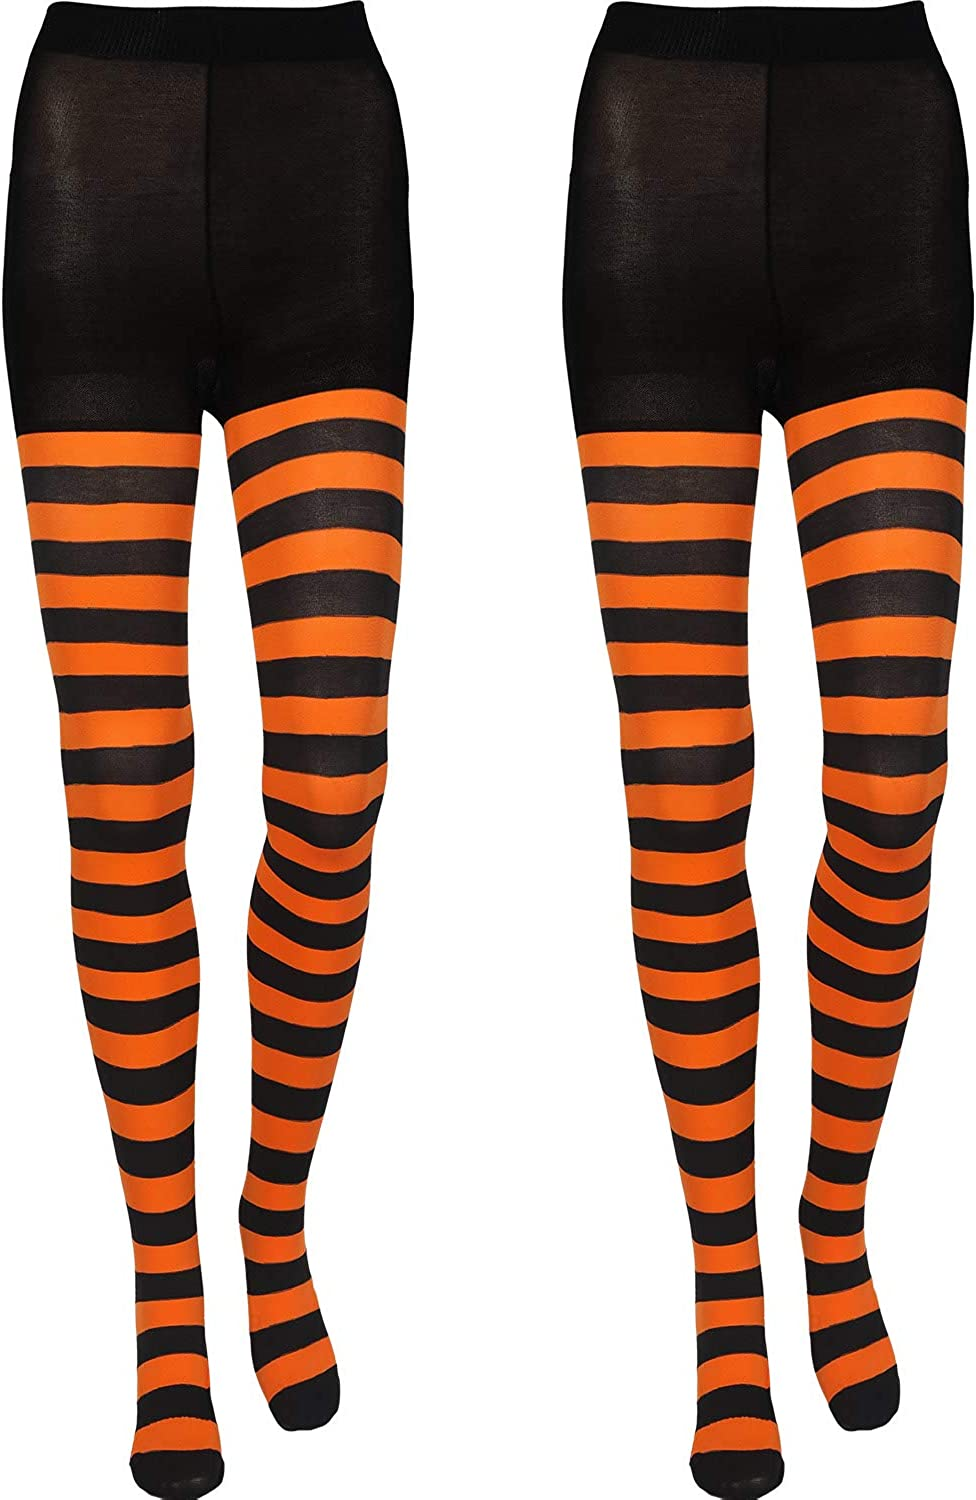 2 Pairs Women's Super Special SALE held Extra Striped Full Stocking Length 2021 autumn and winter new Tights